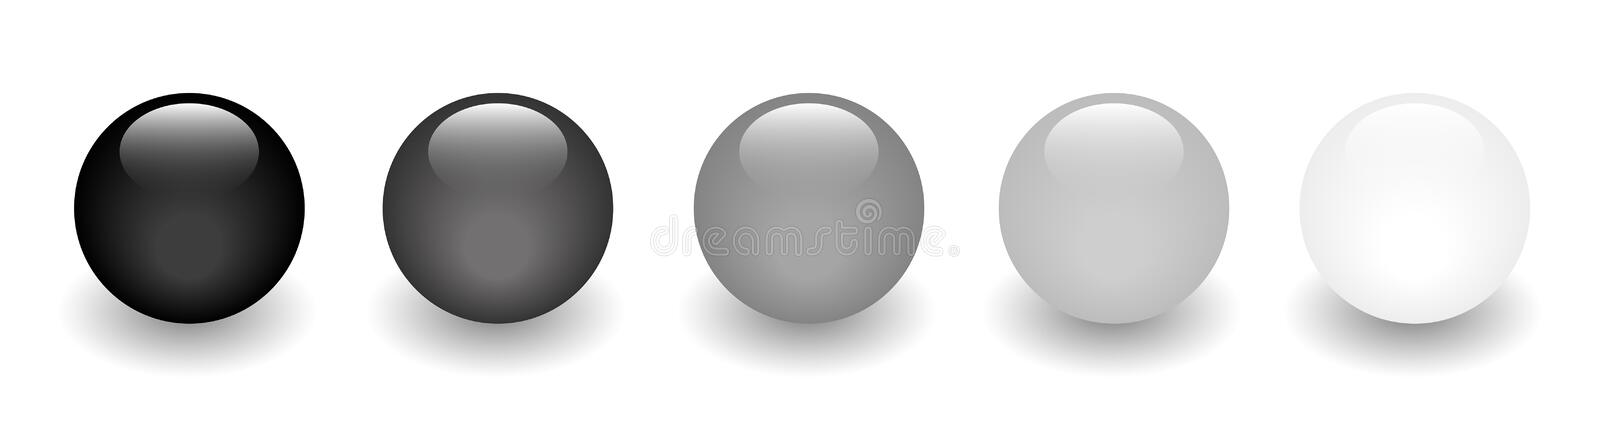 Black Glossy balls - Dark to light stock illustration